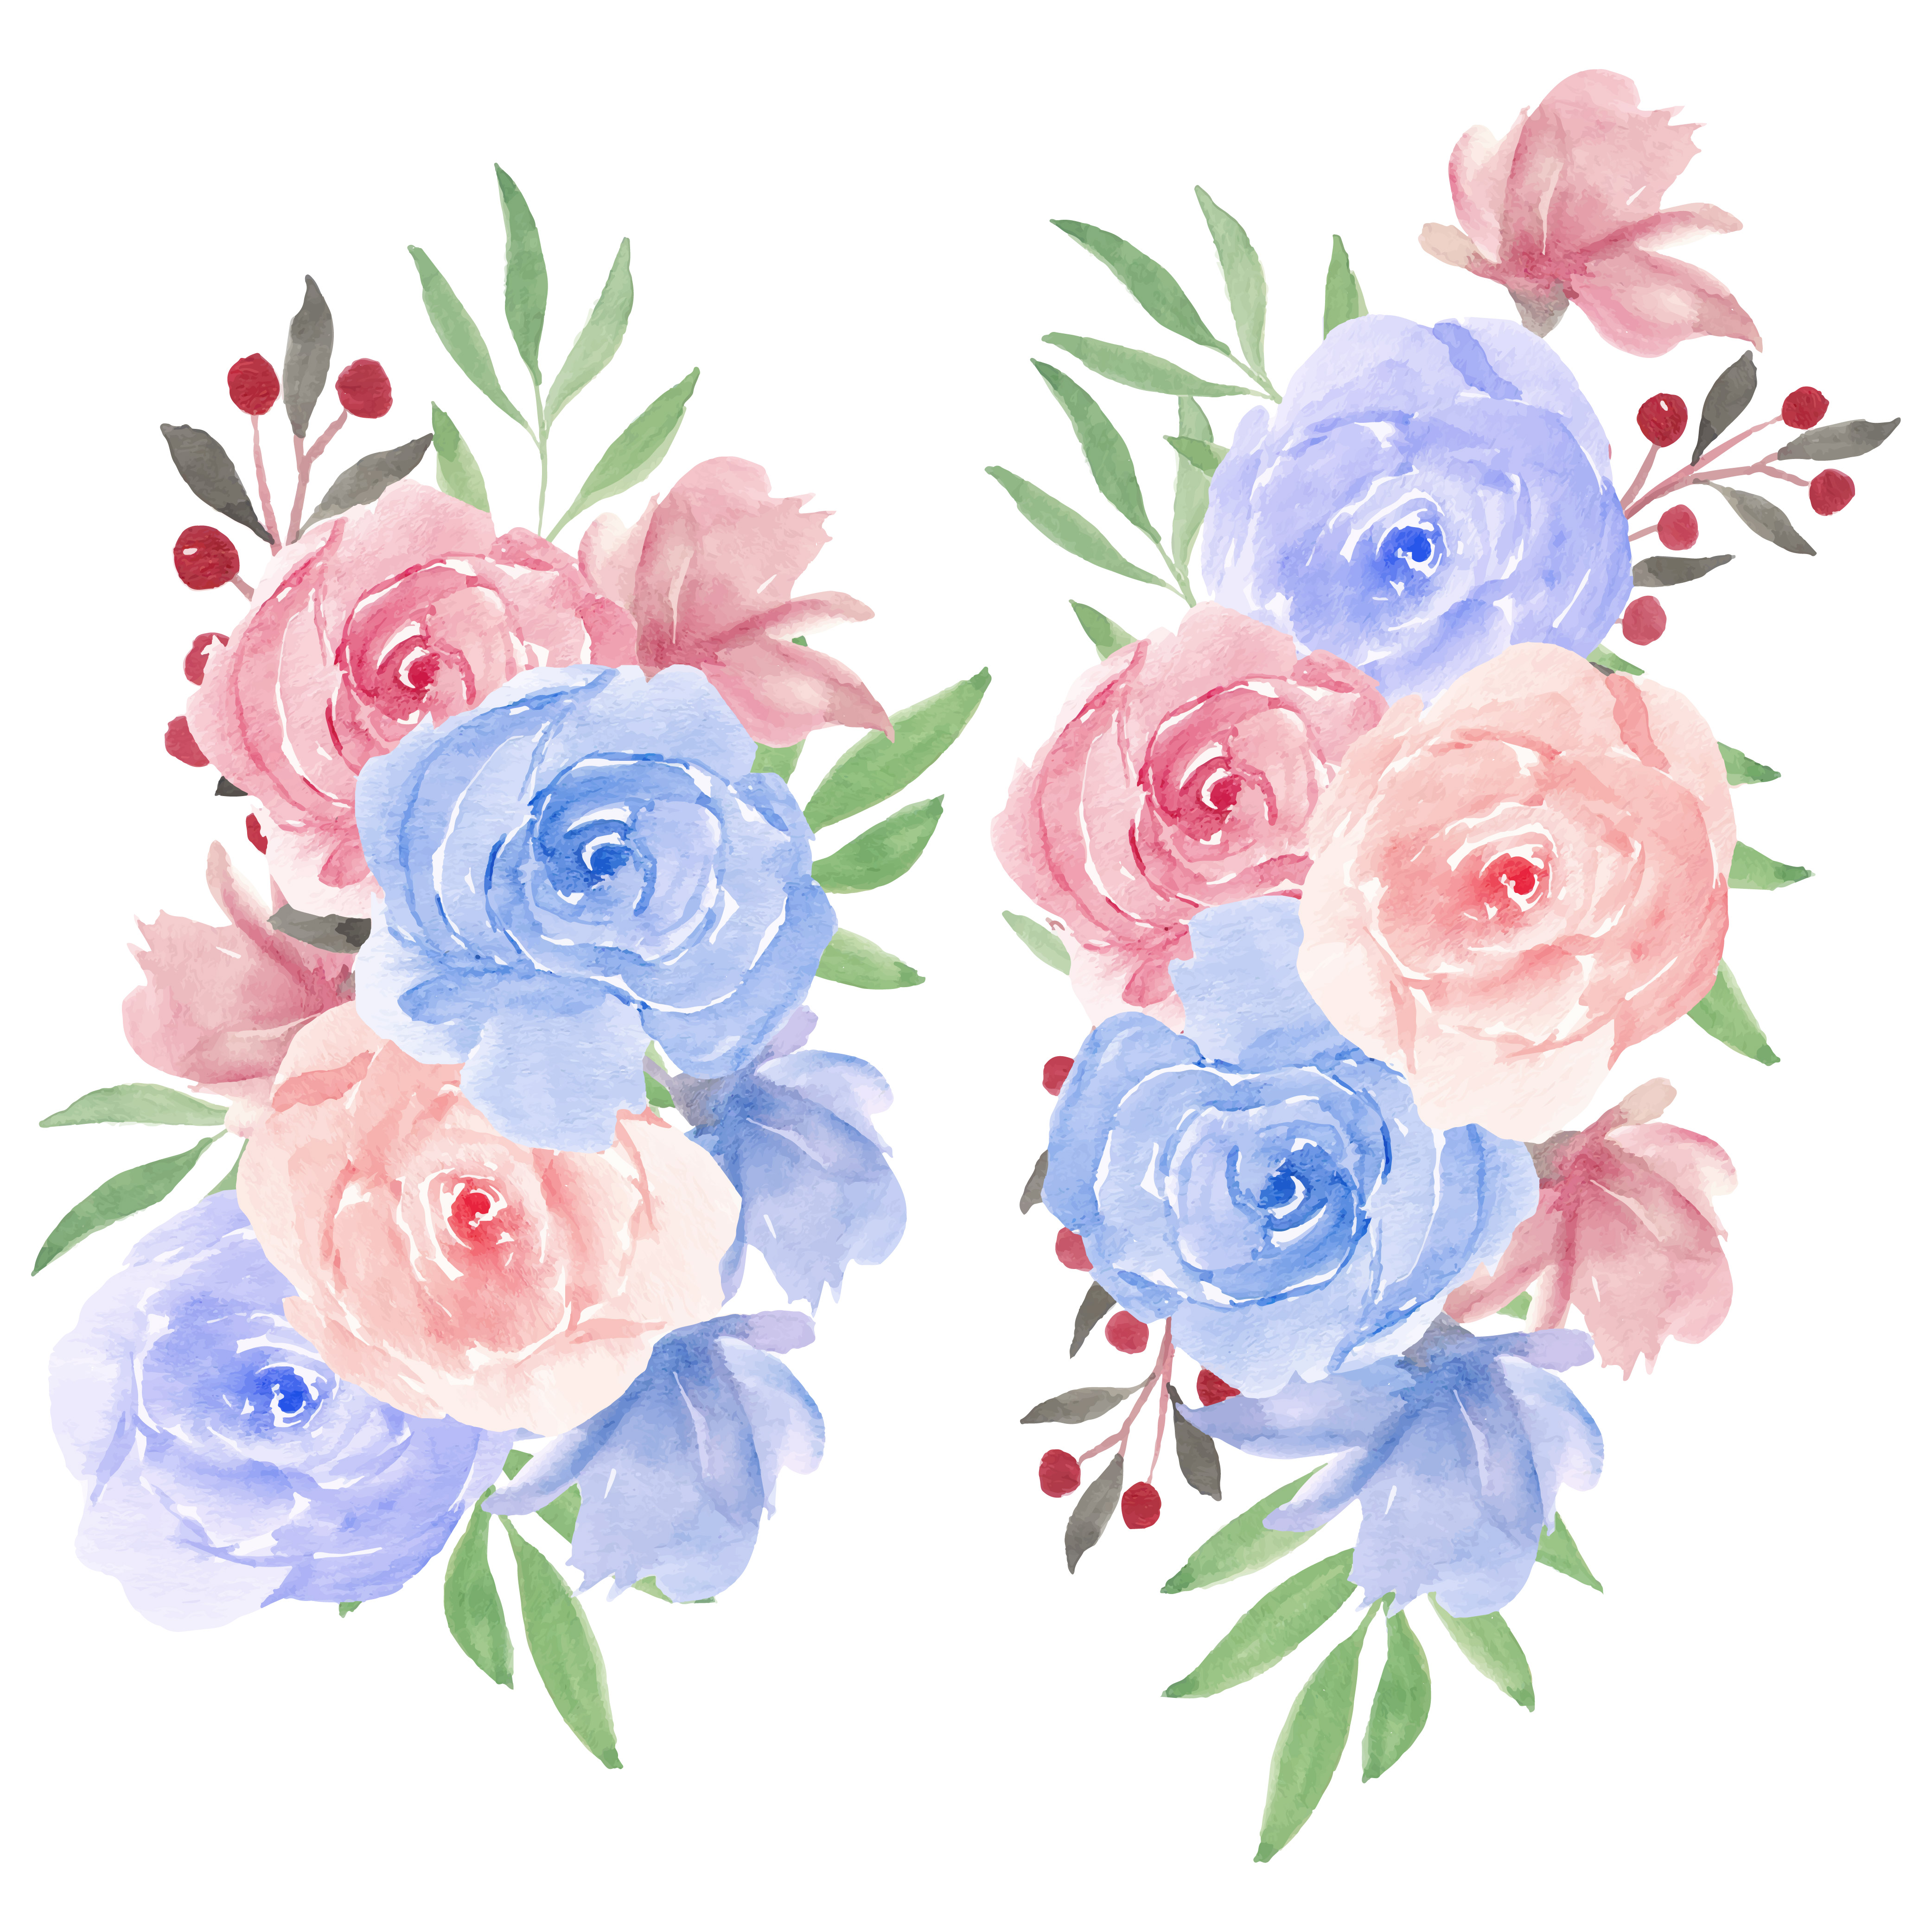 Watercolor Rose Flower Bouquet In Pink Blue Download Free Vectors Clipart Graphics Vector Art